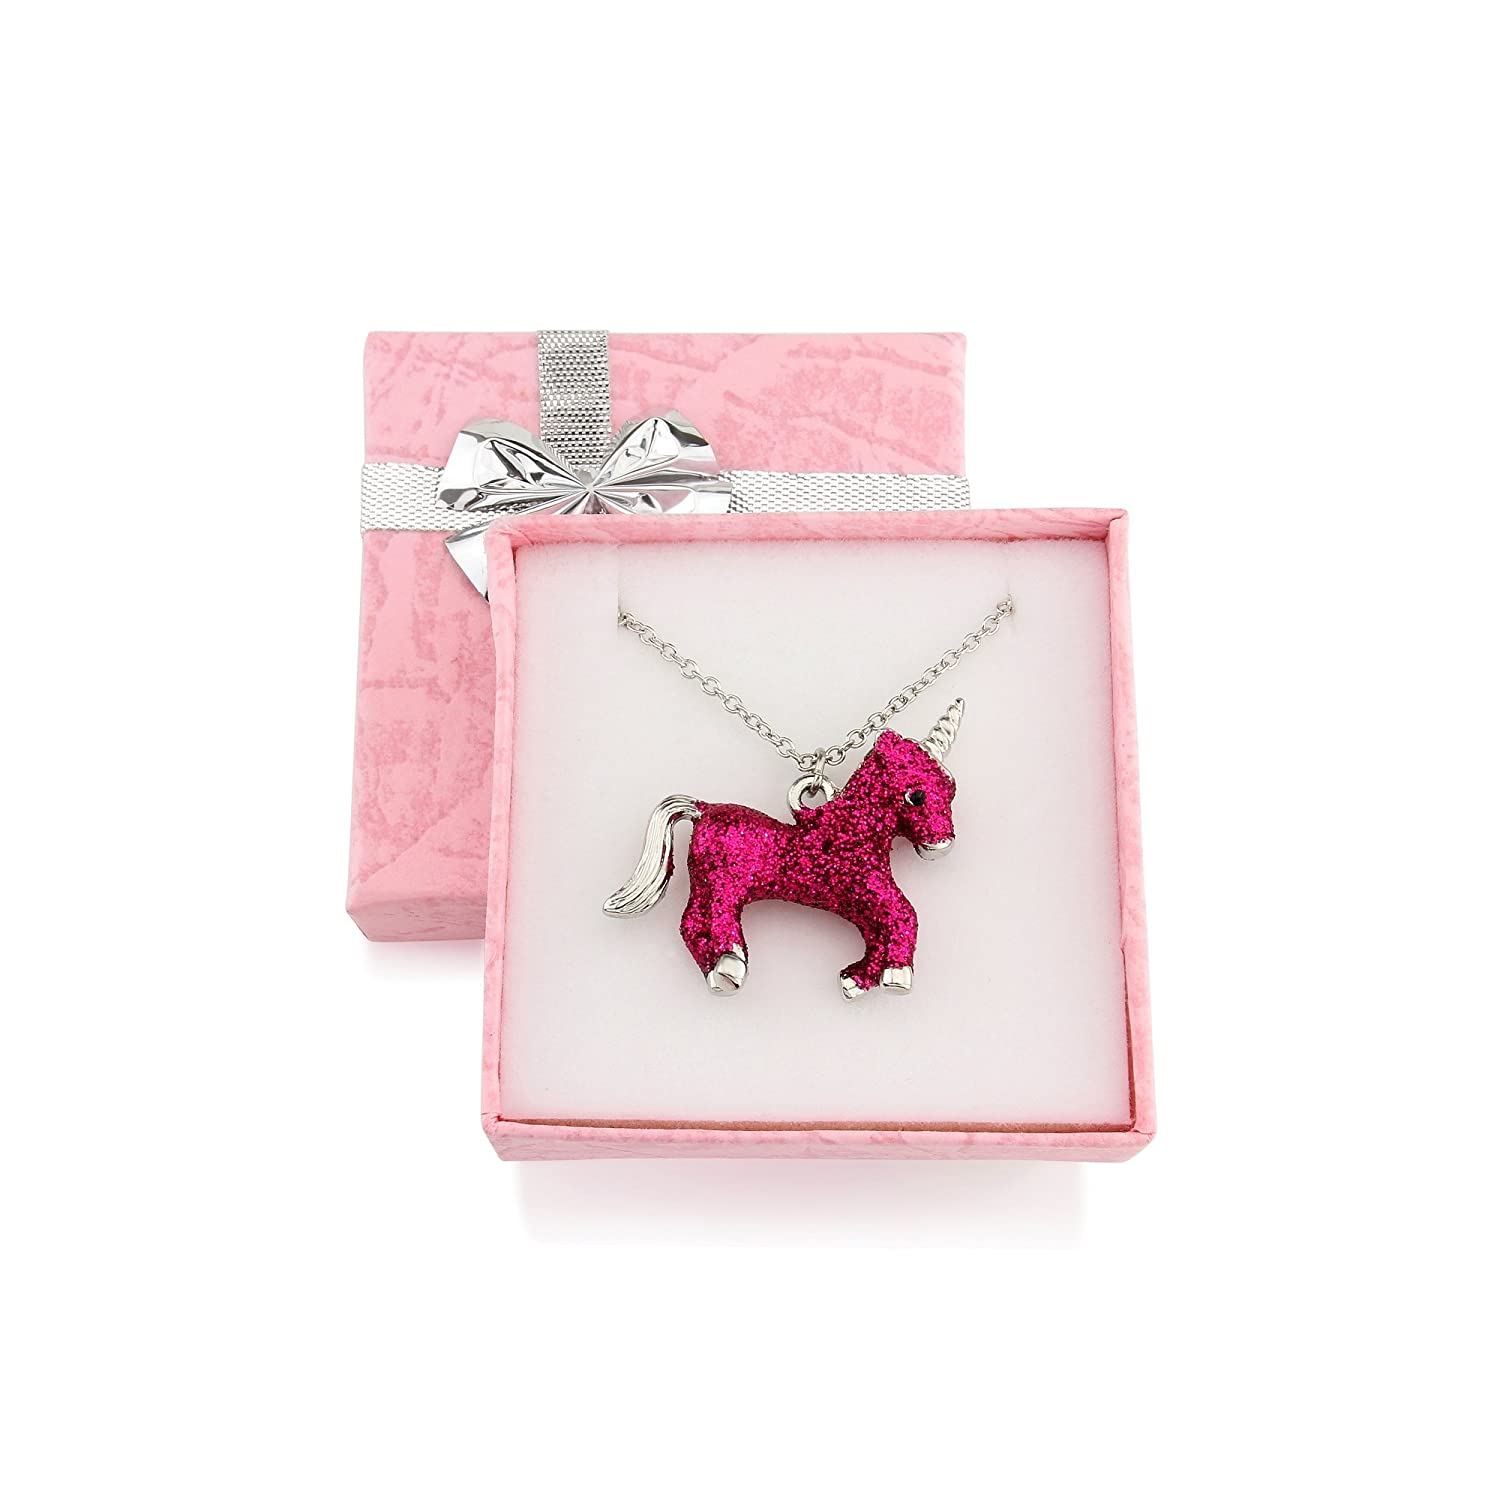 Signed With a Kiss Sparkly Pink Children's Unicorn necklace gift boxed unique unicorn gift for girls 5-12years Chic